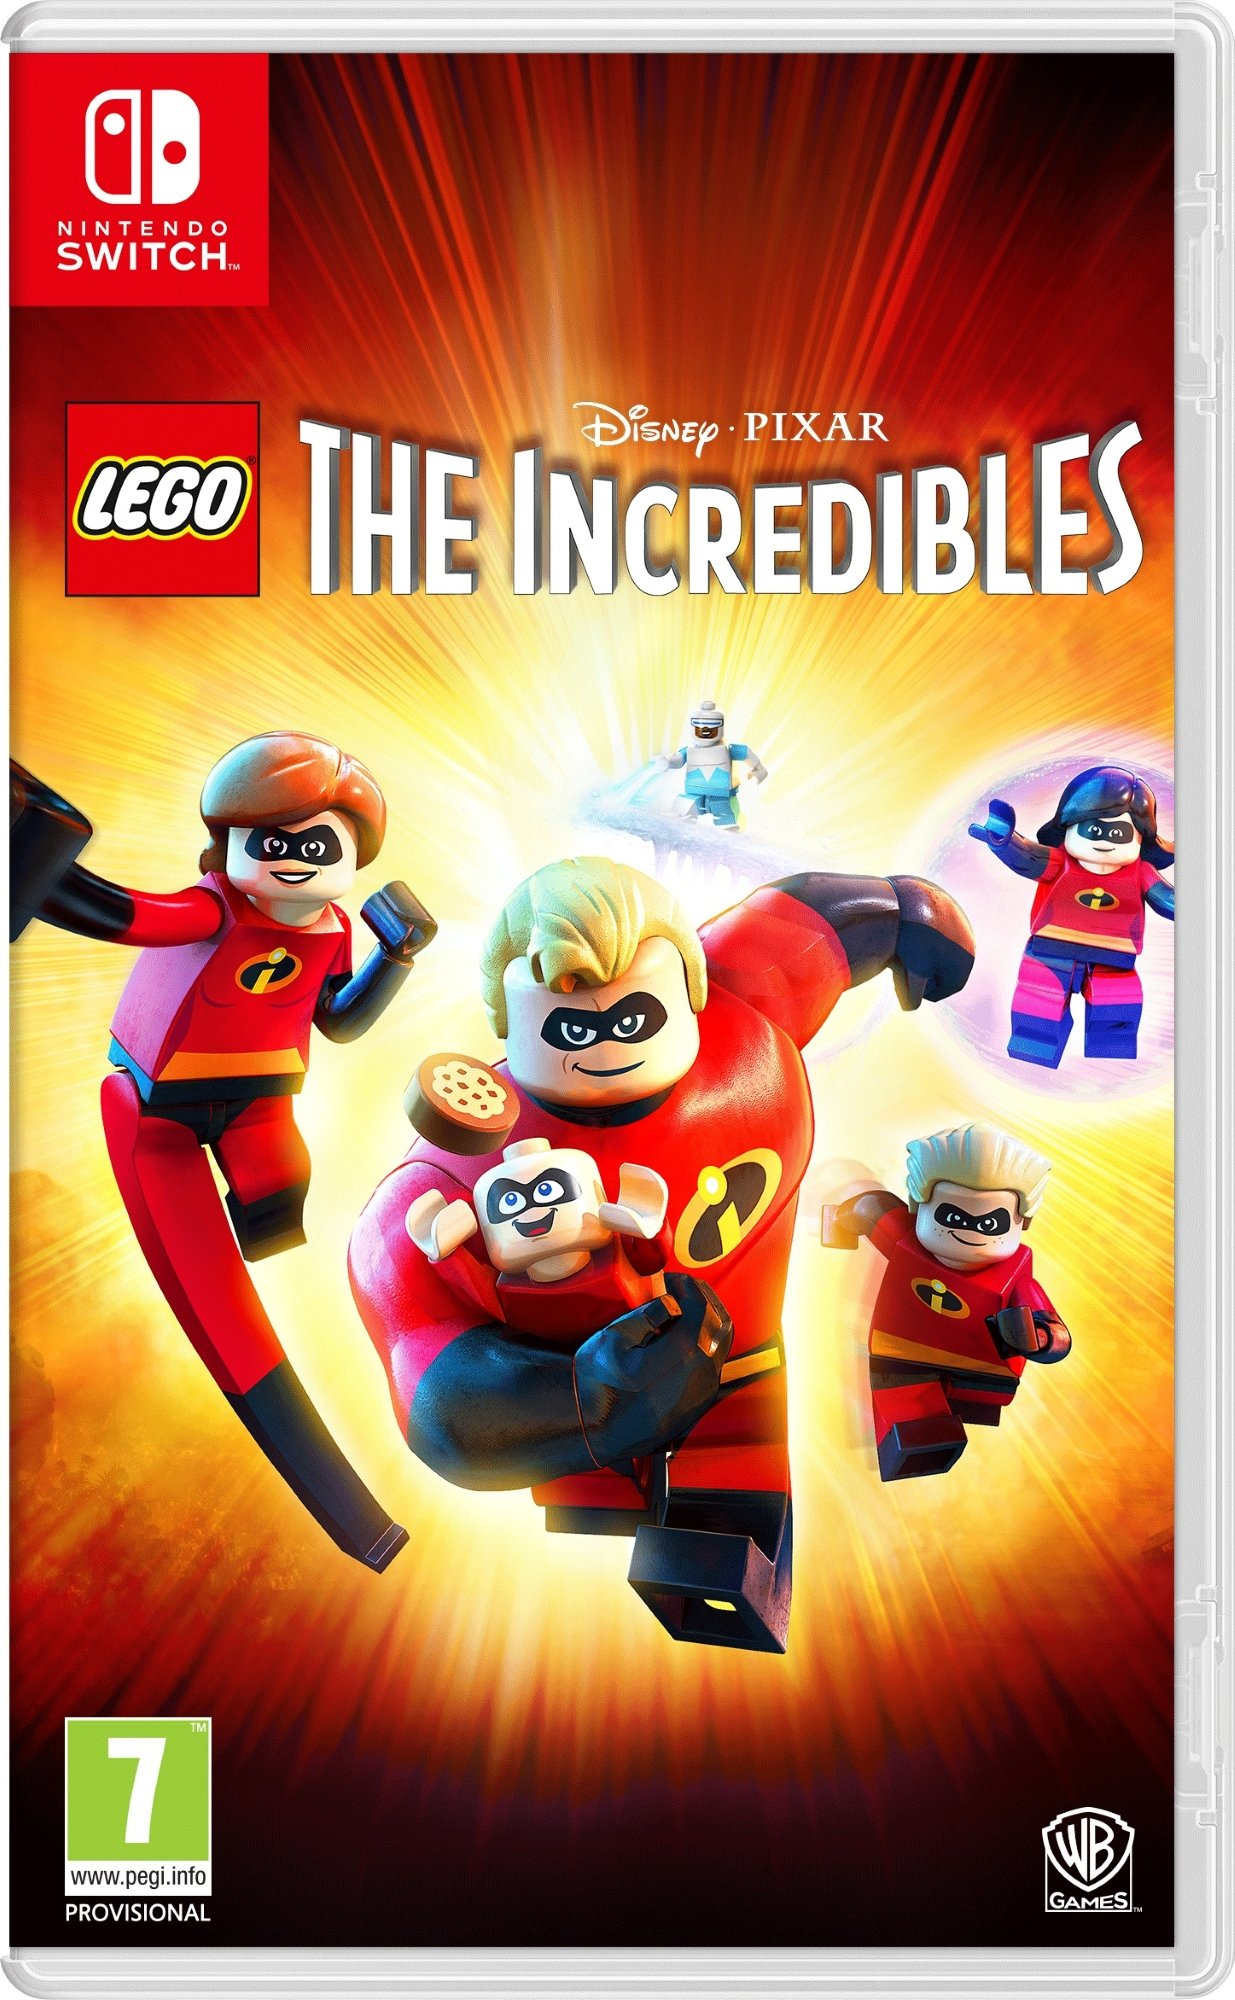 LEGO The Incredibles (UK/DK)